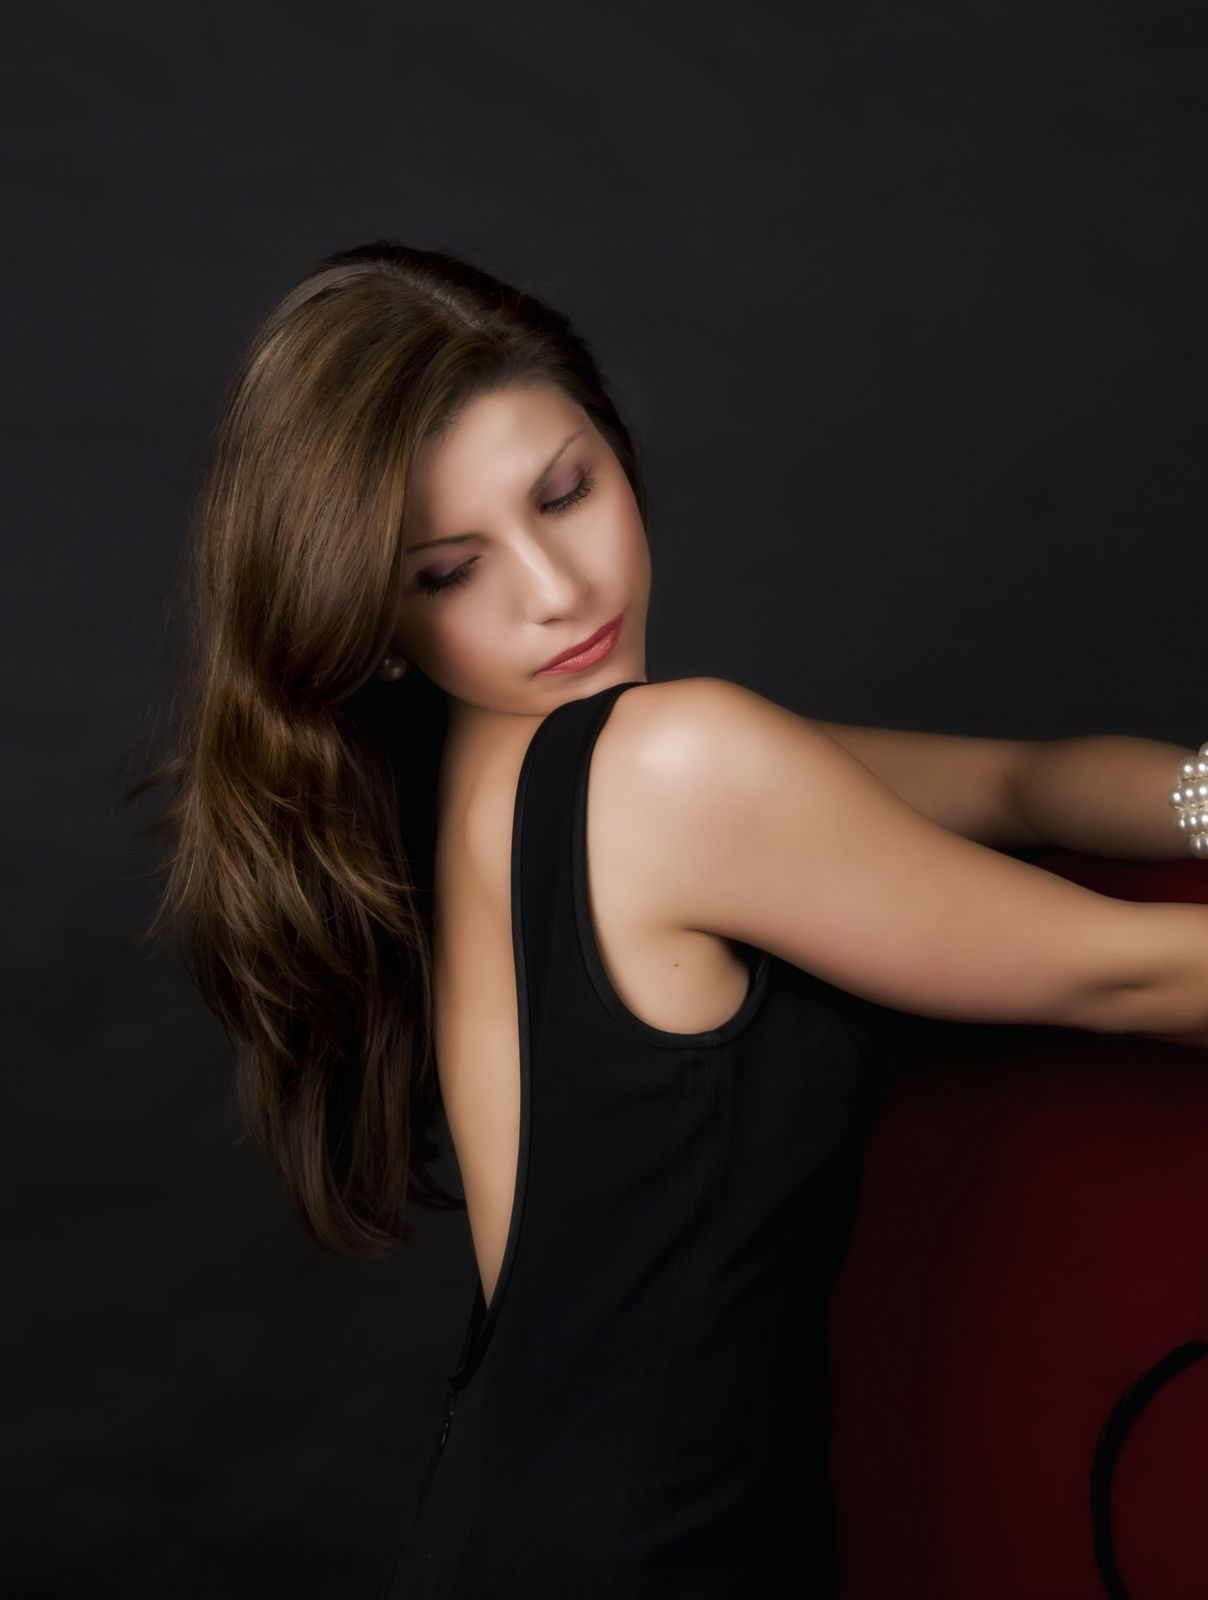 Audra Mitchell Photography: Glamour and Boudoir Photography